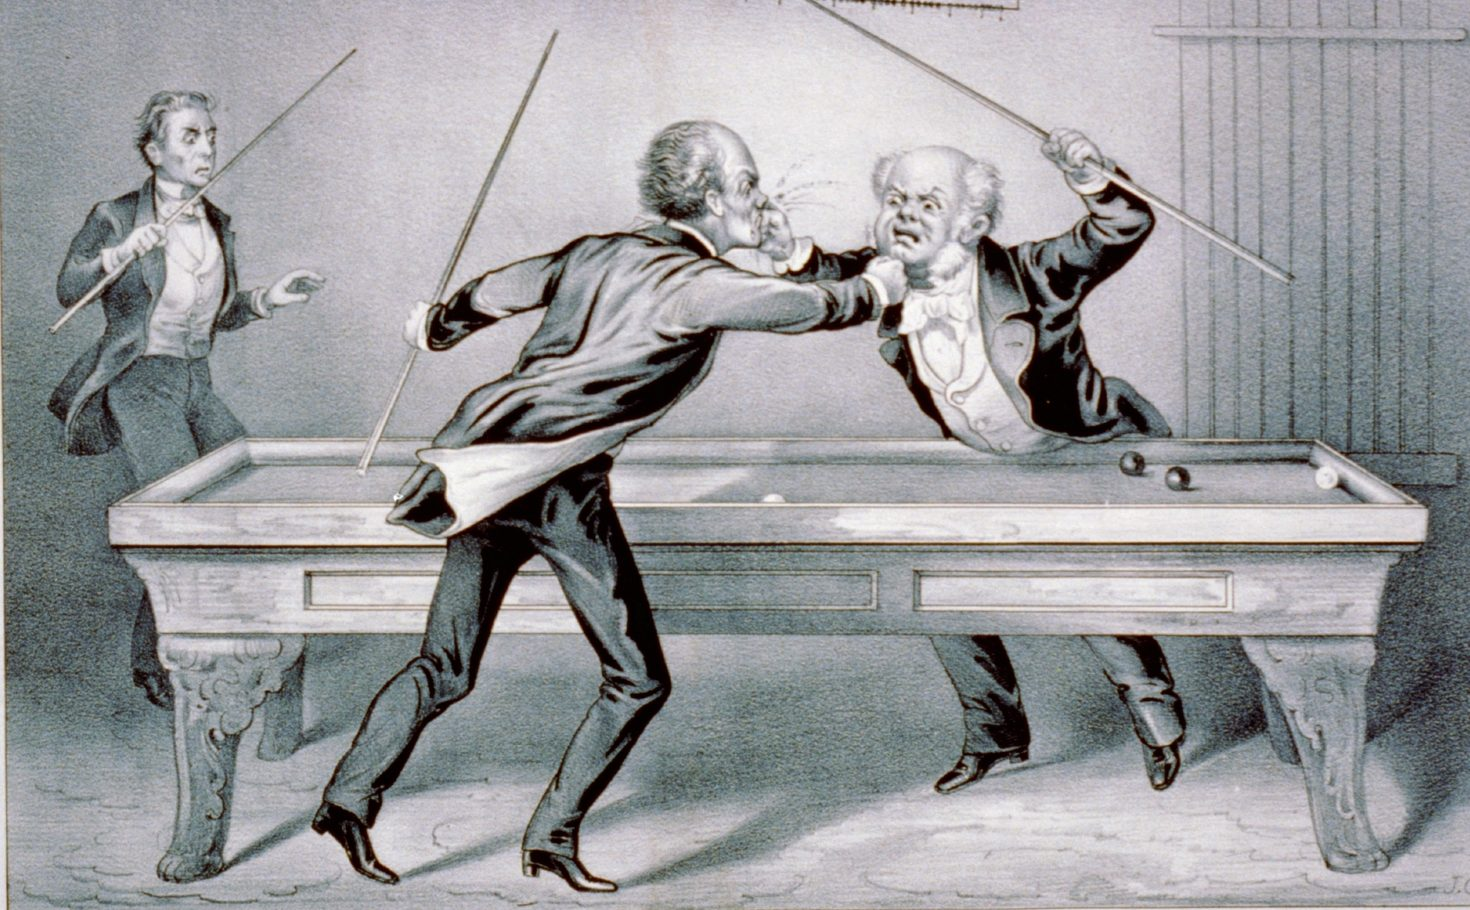 Two men fighting over a pool table.a